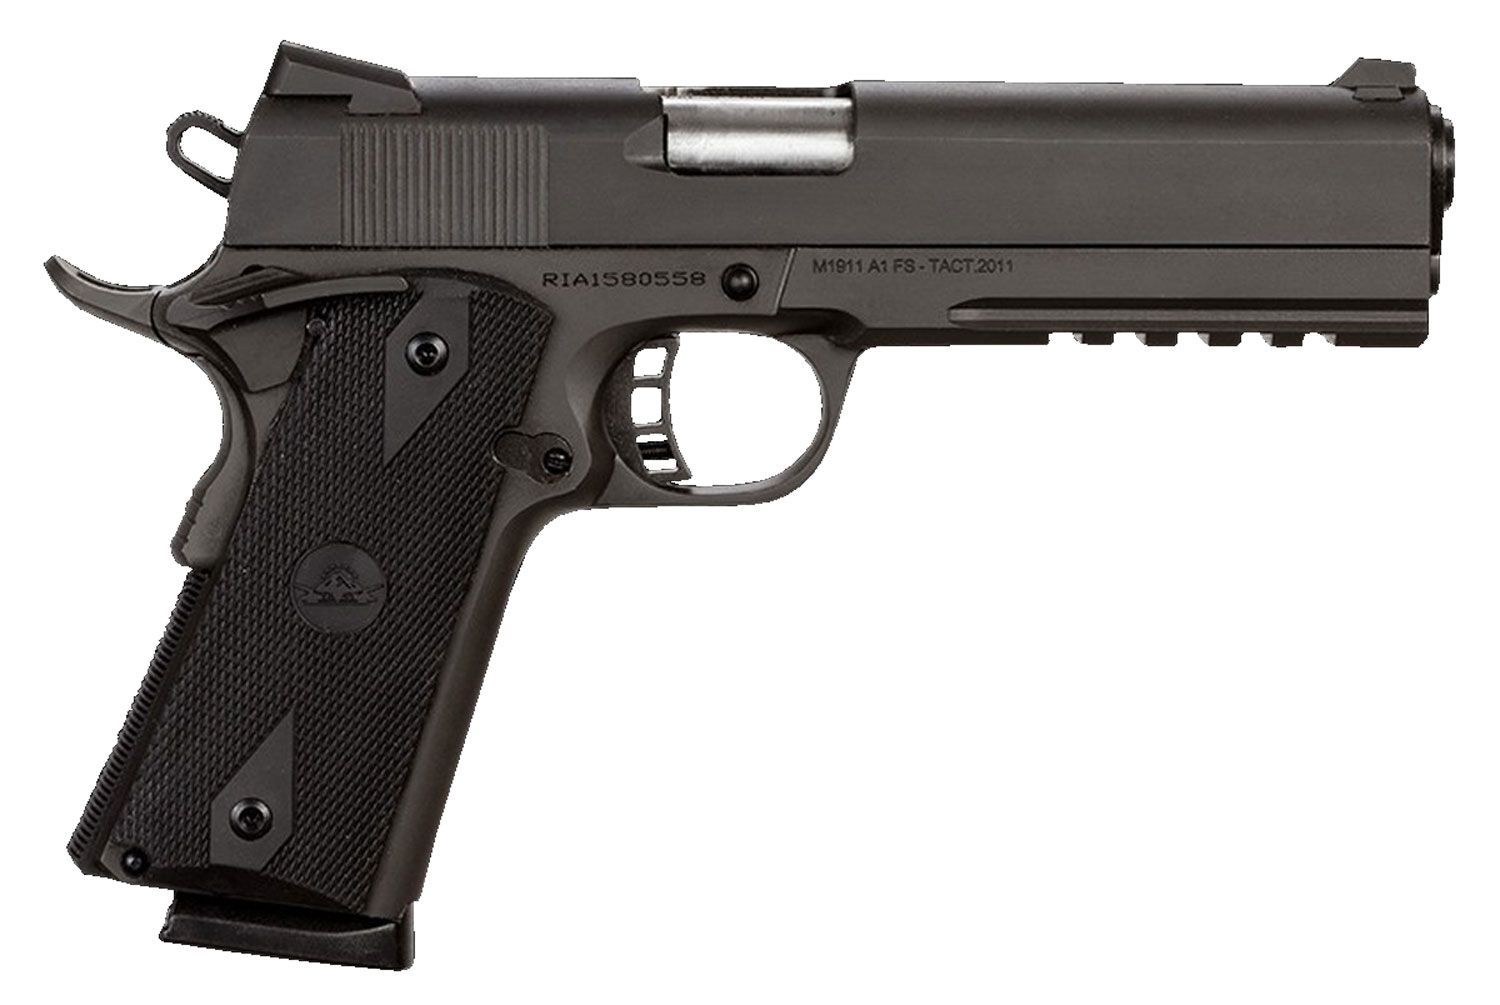 Rock Island 51484 TAC Standard FS Single 45 ACP 5